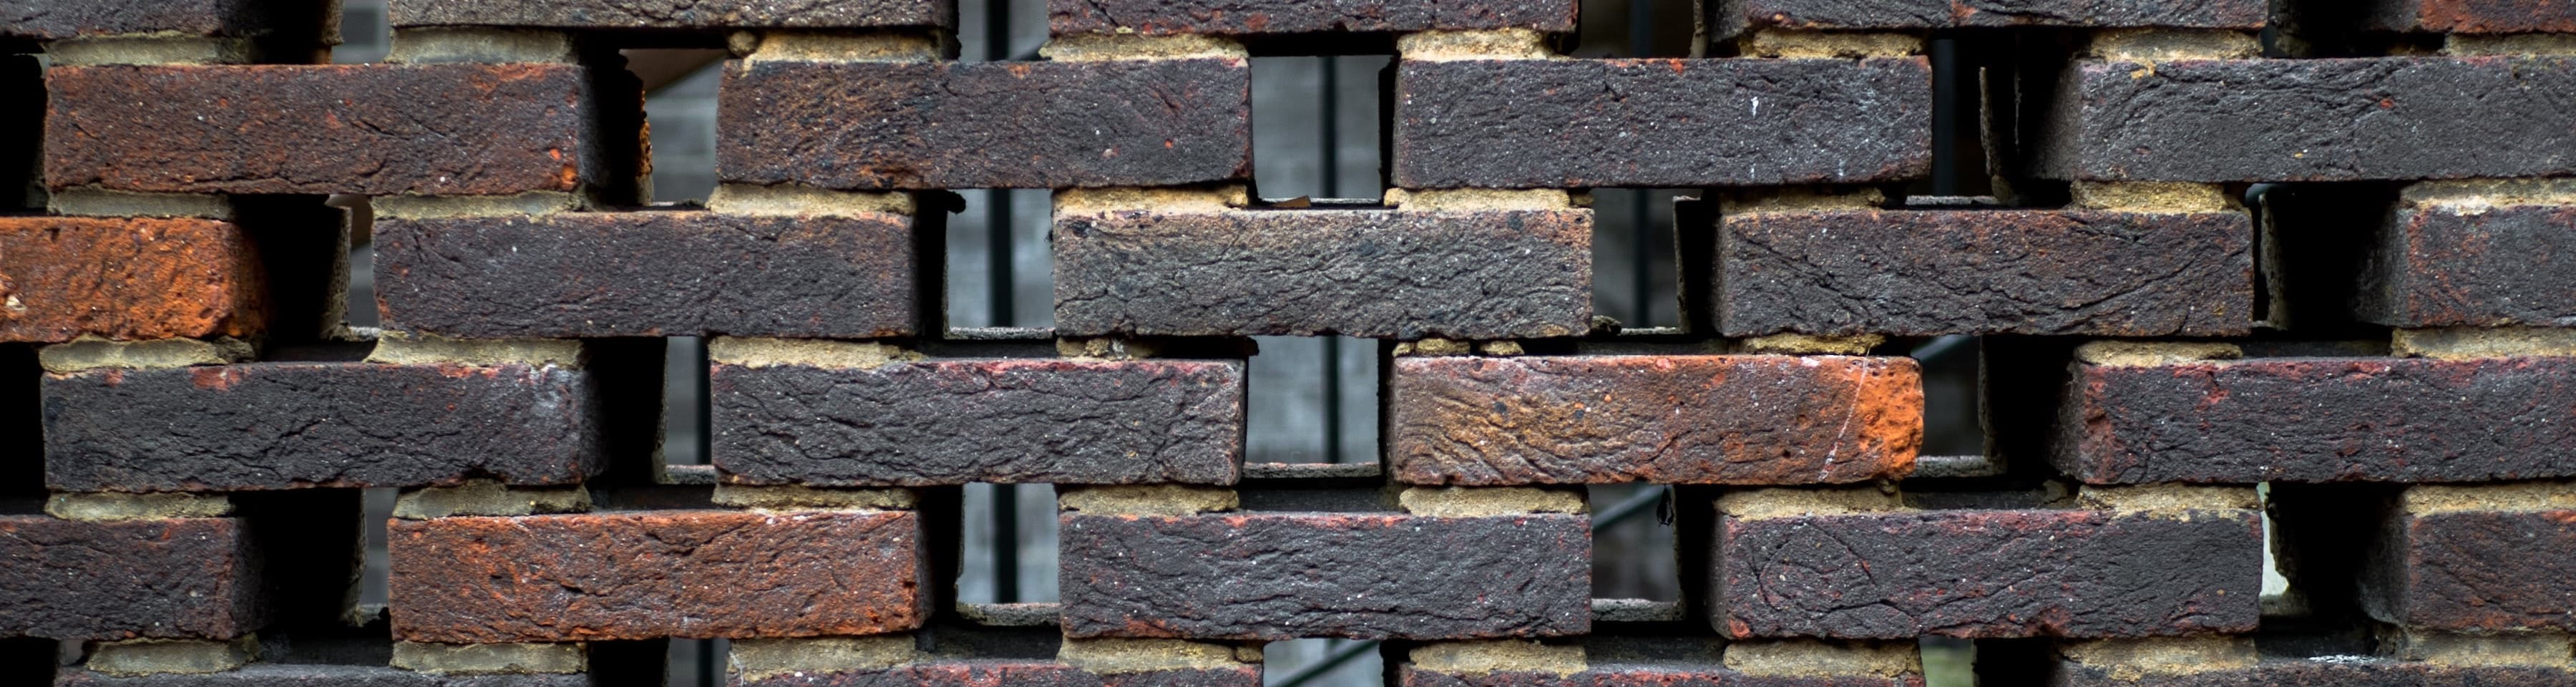 A brick wall with gaps.